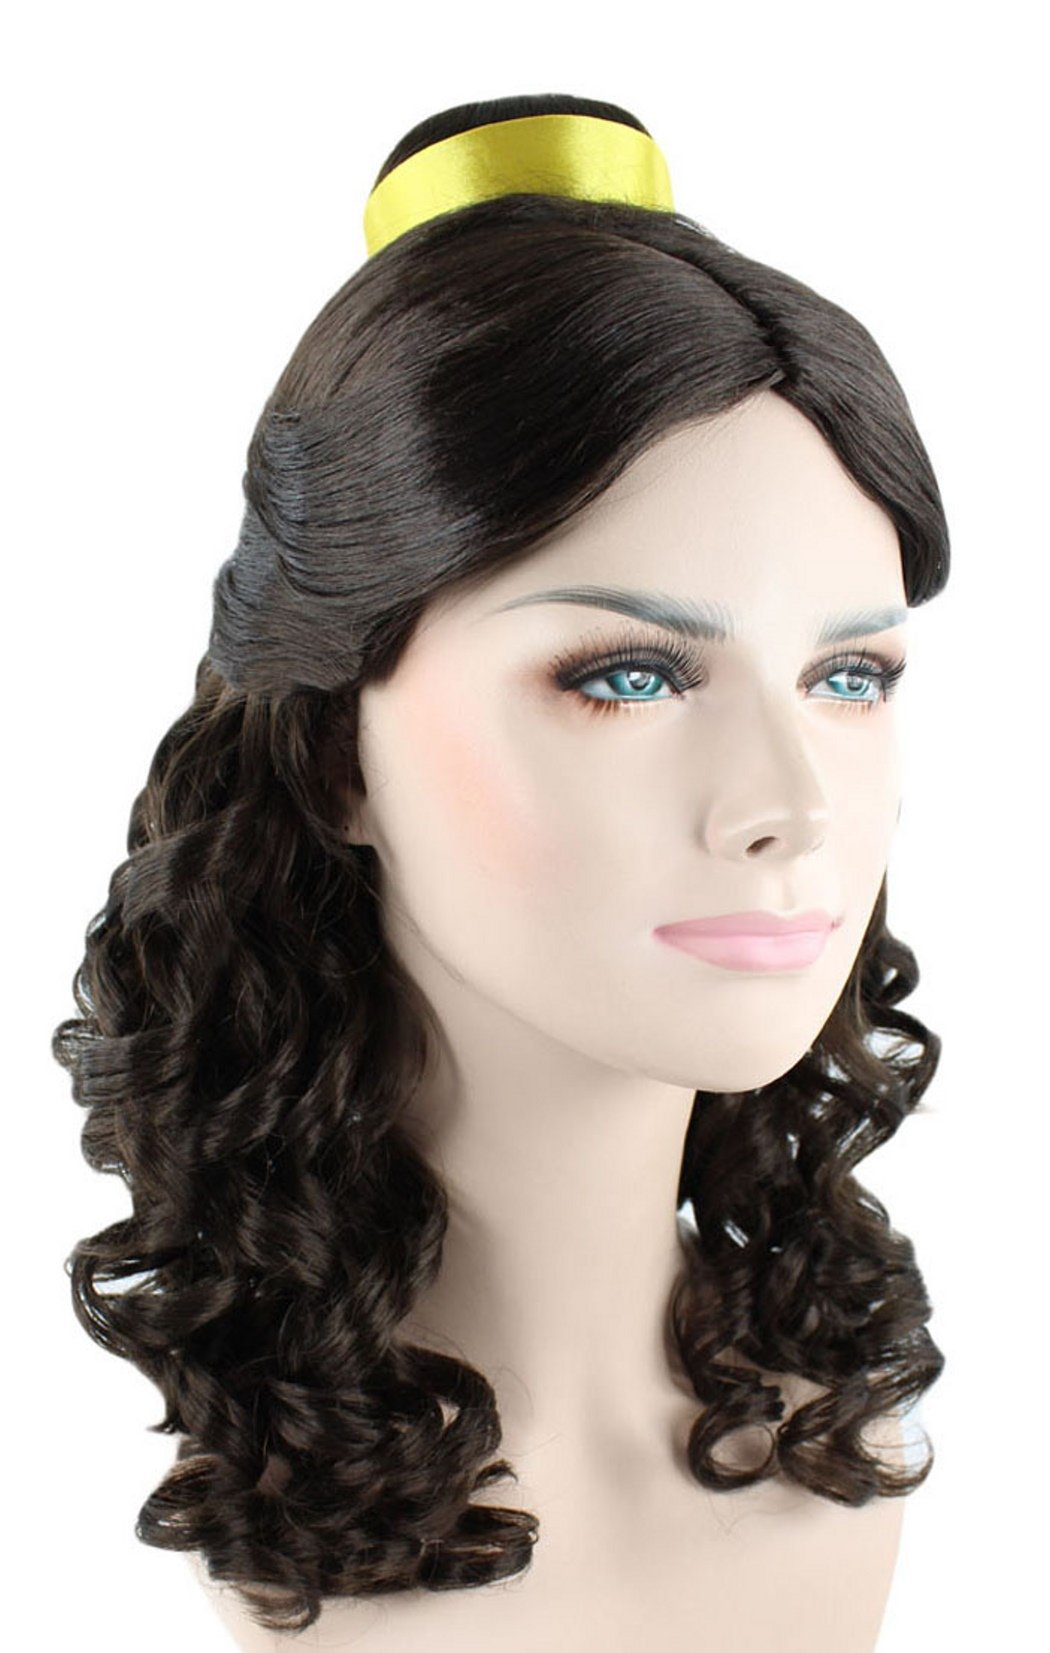 Princess Belle Wig Long Curly Wave Hair with Ribbon for Cosplay Costume Party Dress up Halloween (Dark Brown)